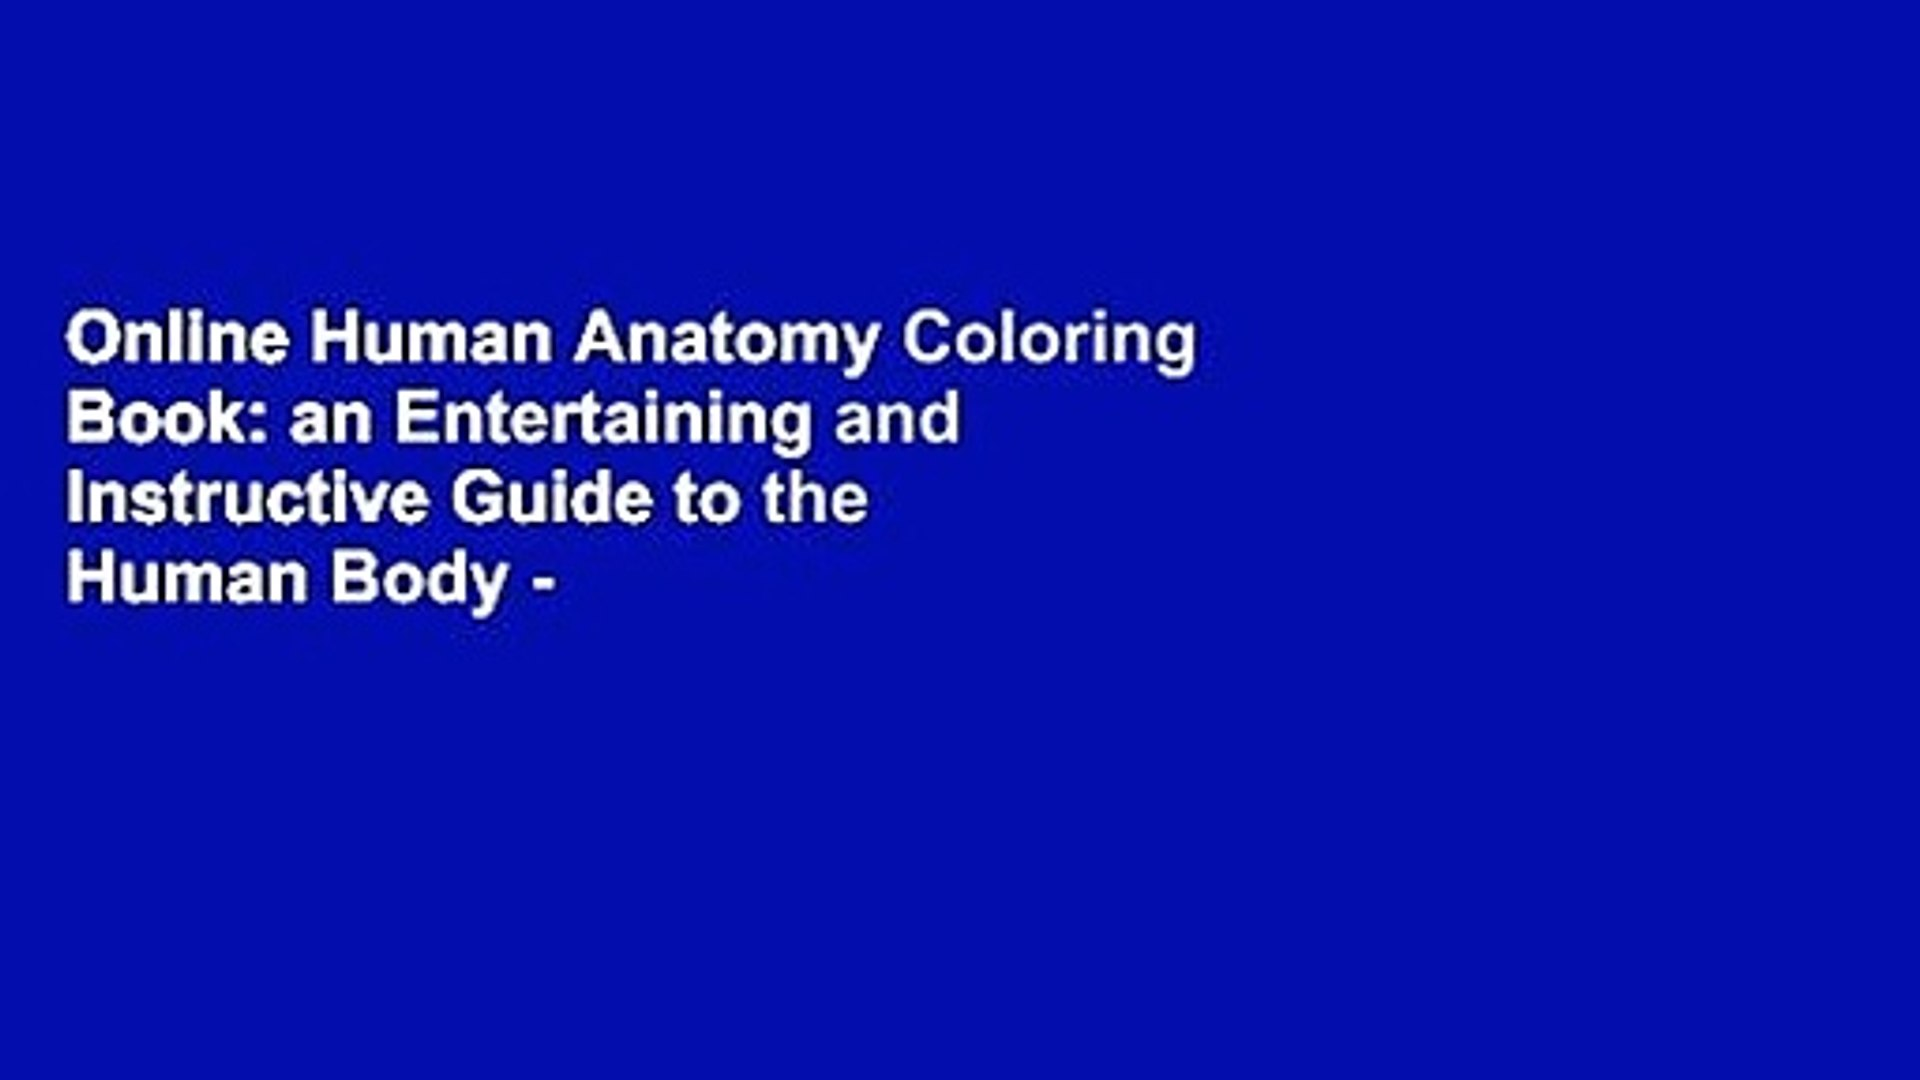 - Online Human Anatomy Coloring Book: An Entertaining And